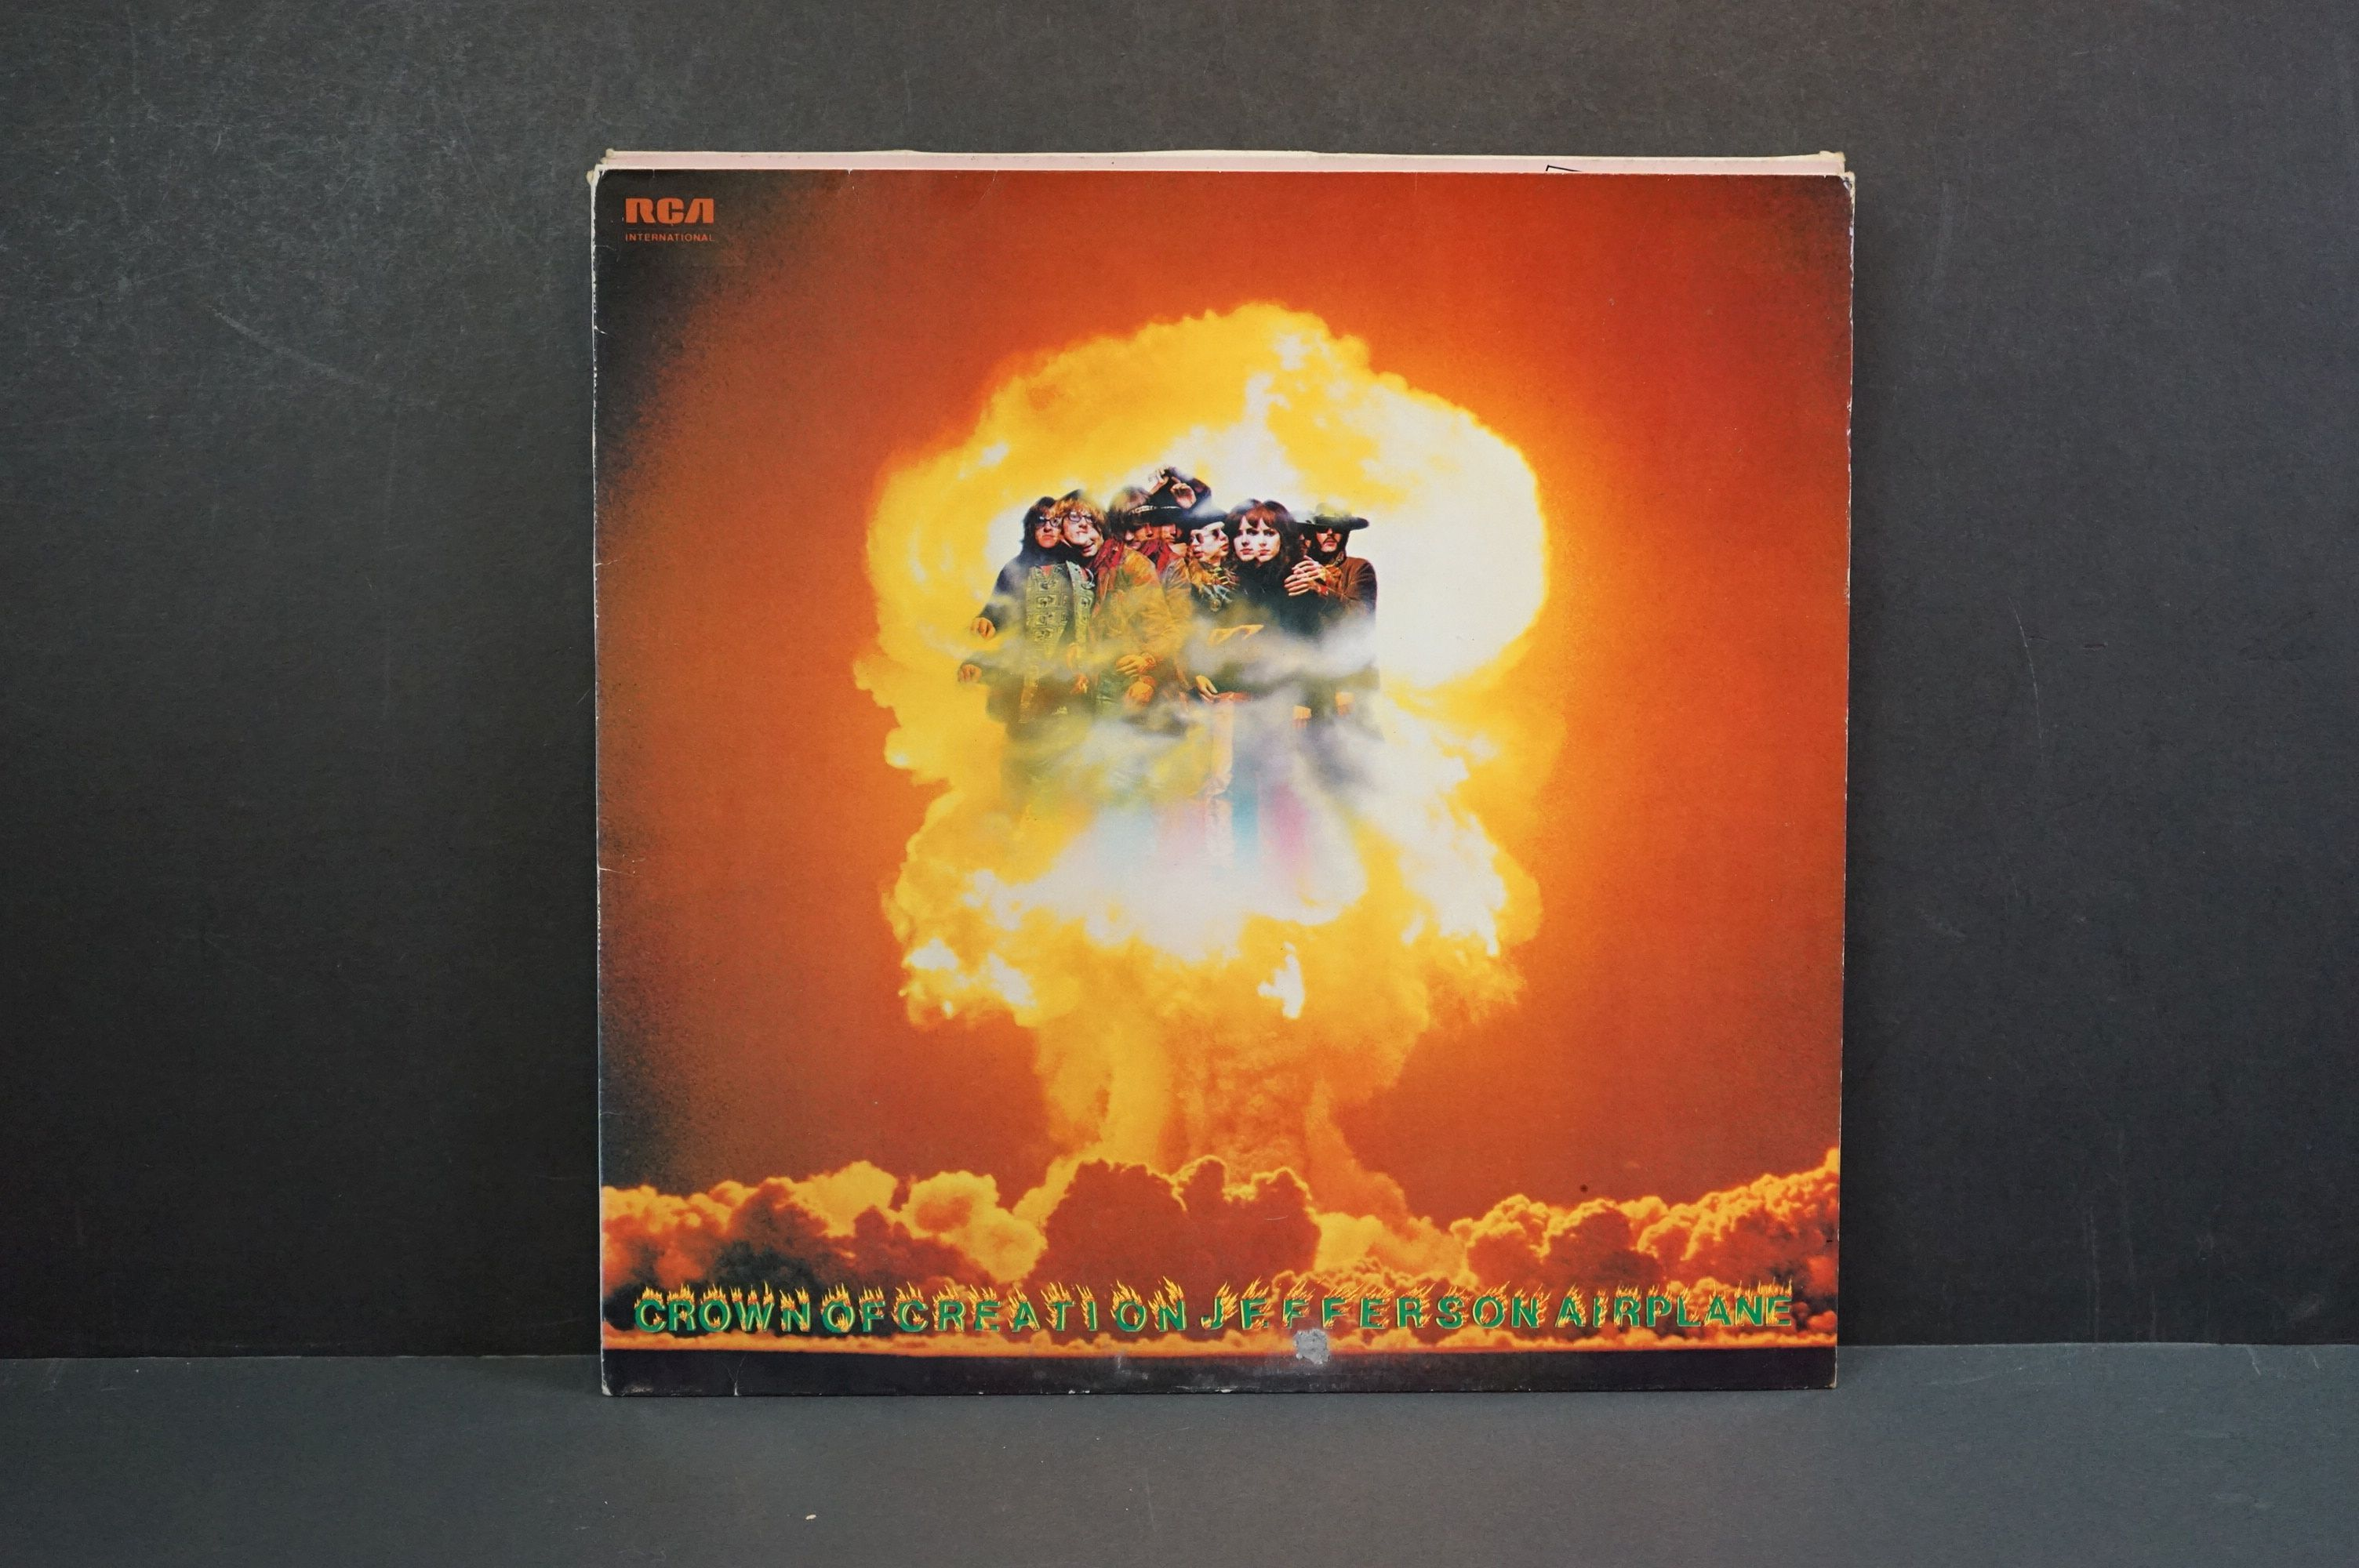 Vinyl - 10 Jefferson Airplane LPs to include Surrealistia Pillow / After Bathing at Baxter's (89301) - Image 12 of 16